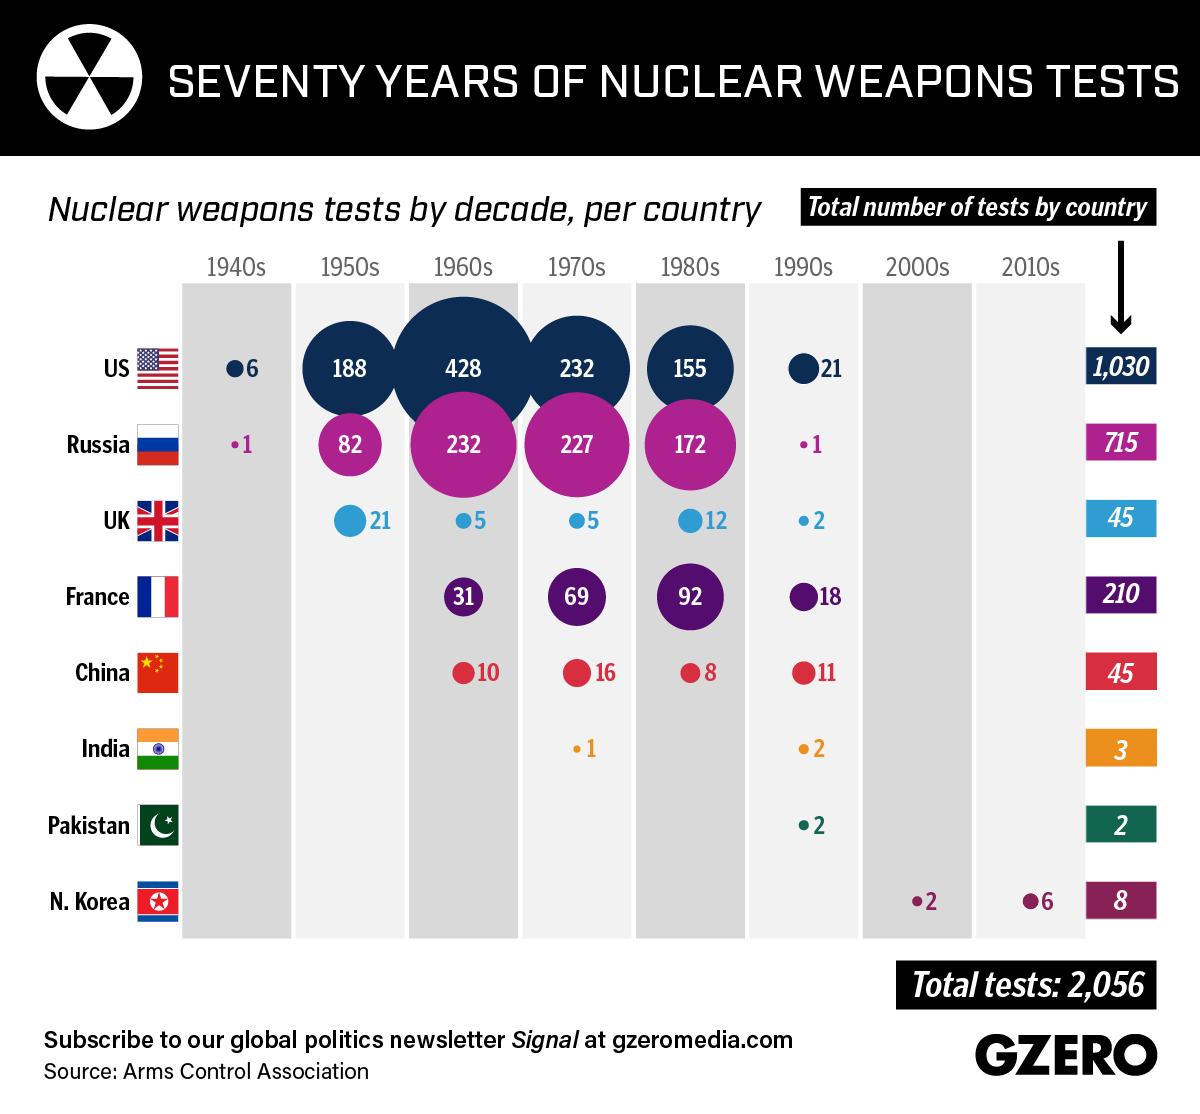 Graphic Truth: Seventy Years of Nuclear Weapons Tests